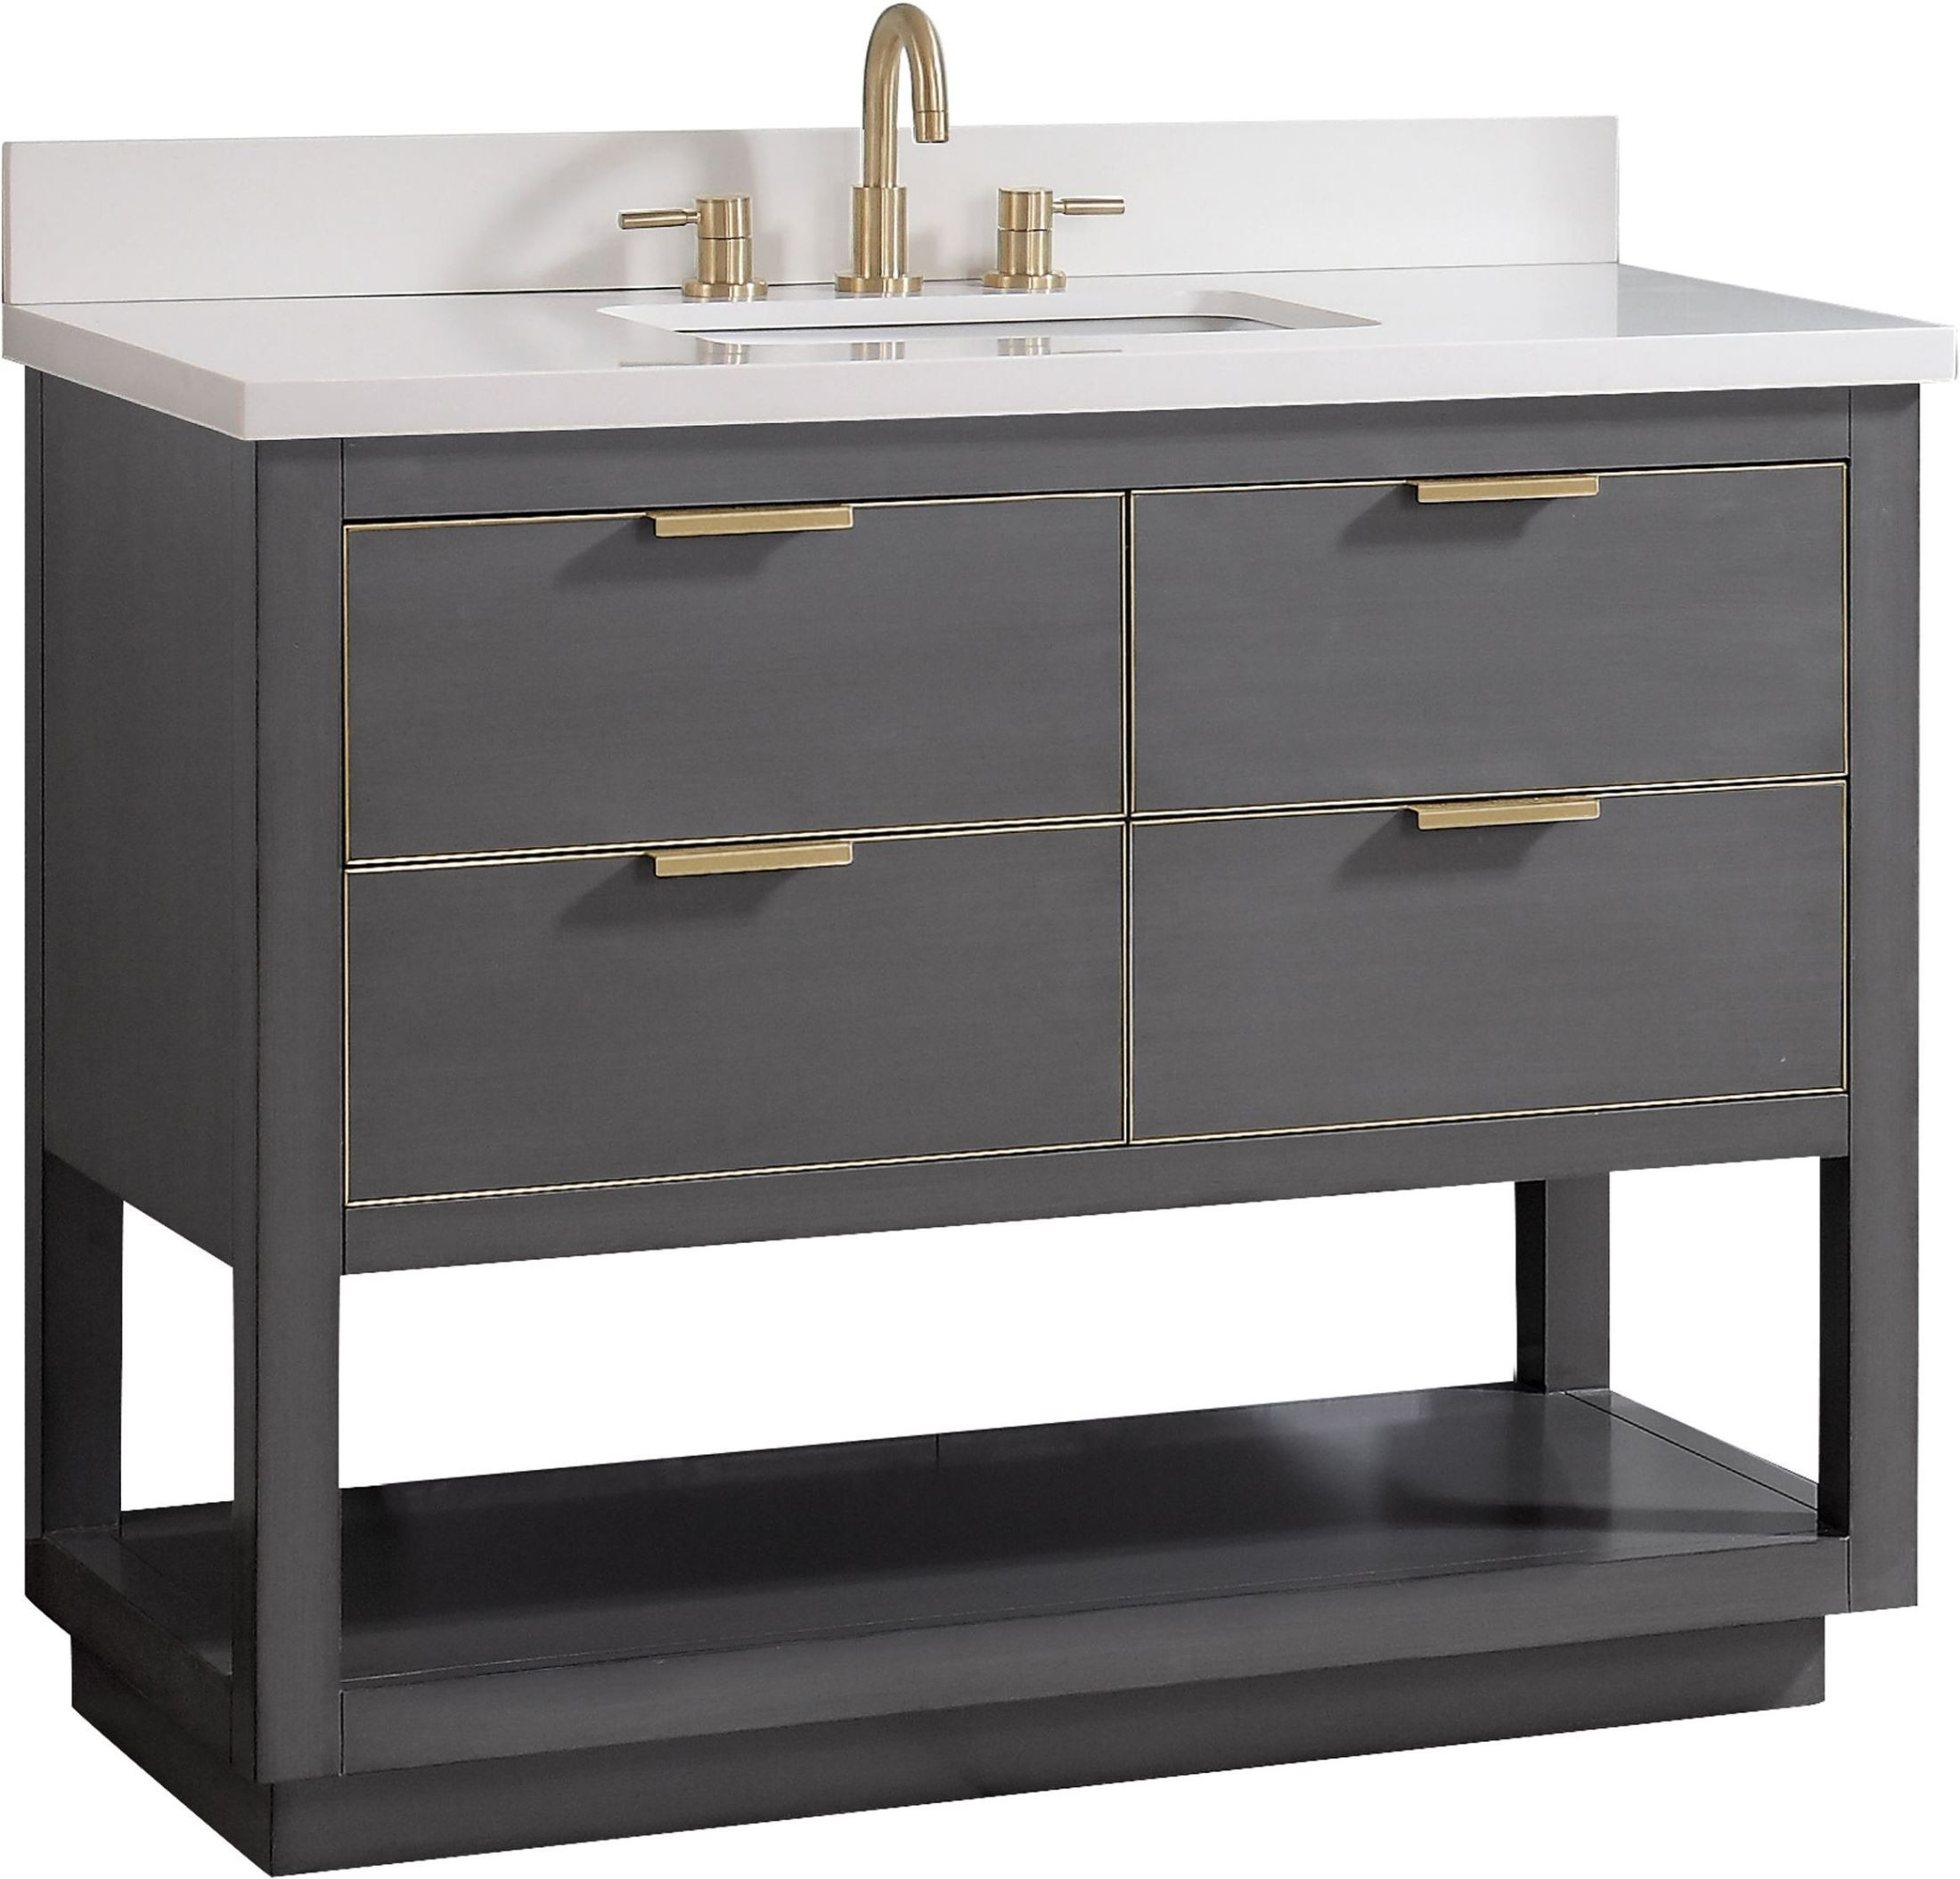 "Allie Twilight Gray And Gold Trim 43"" Vanity With White Quartz Top Within Allie Dark Grey Sofa Chairs (Image 9 of 20)"